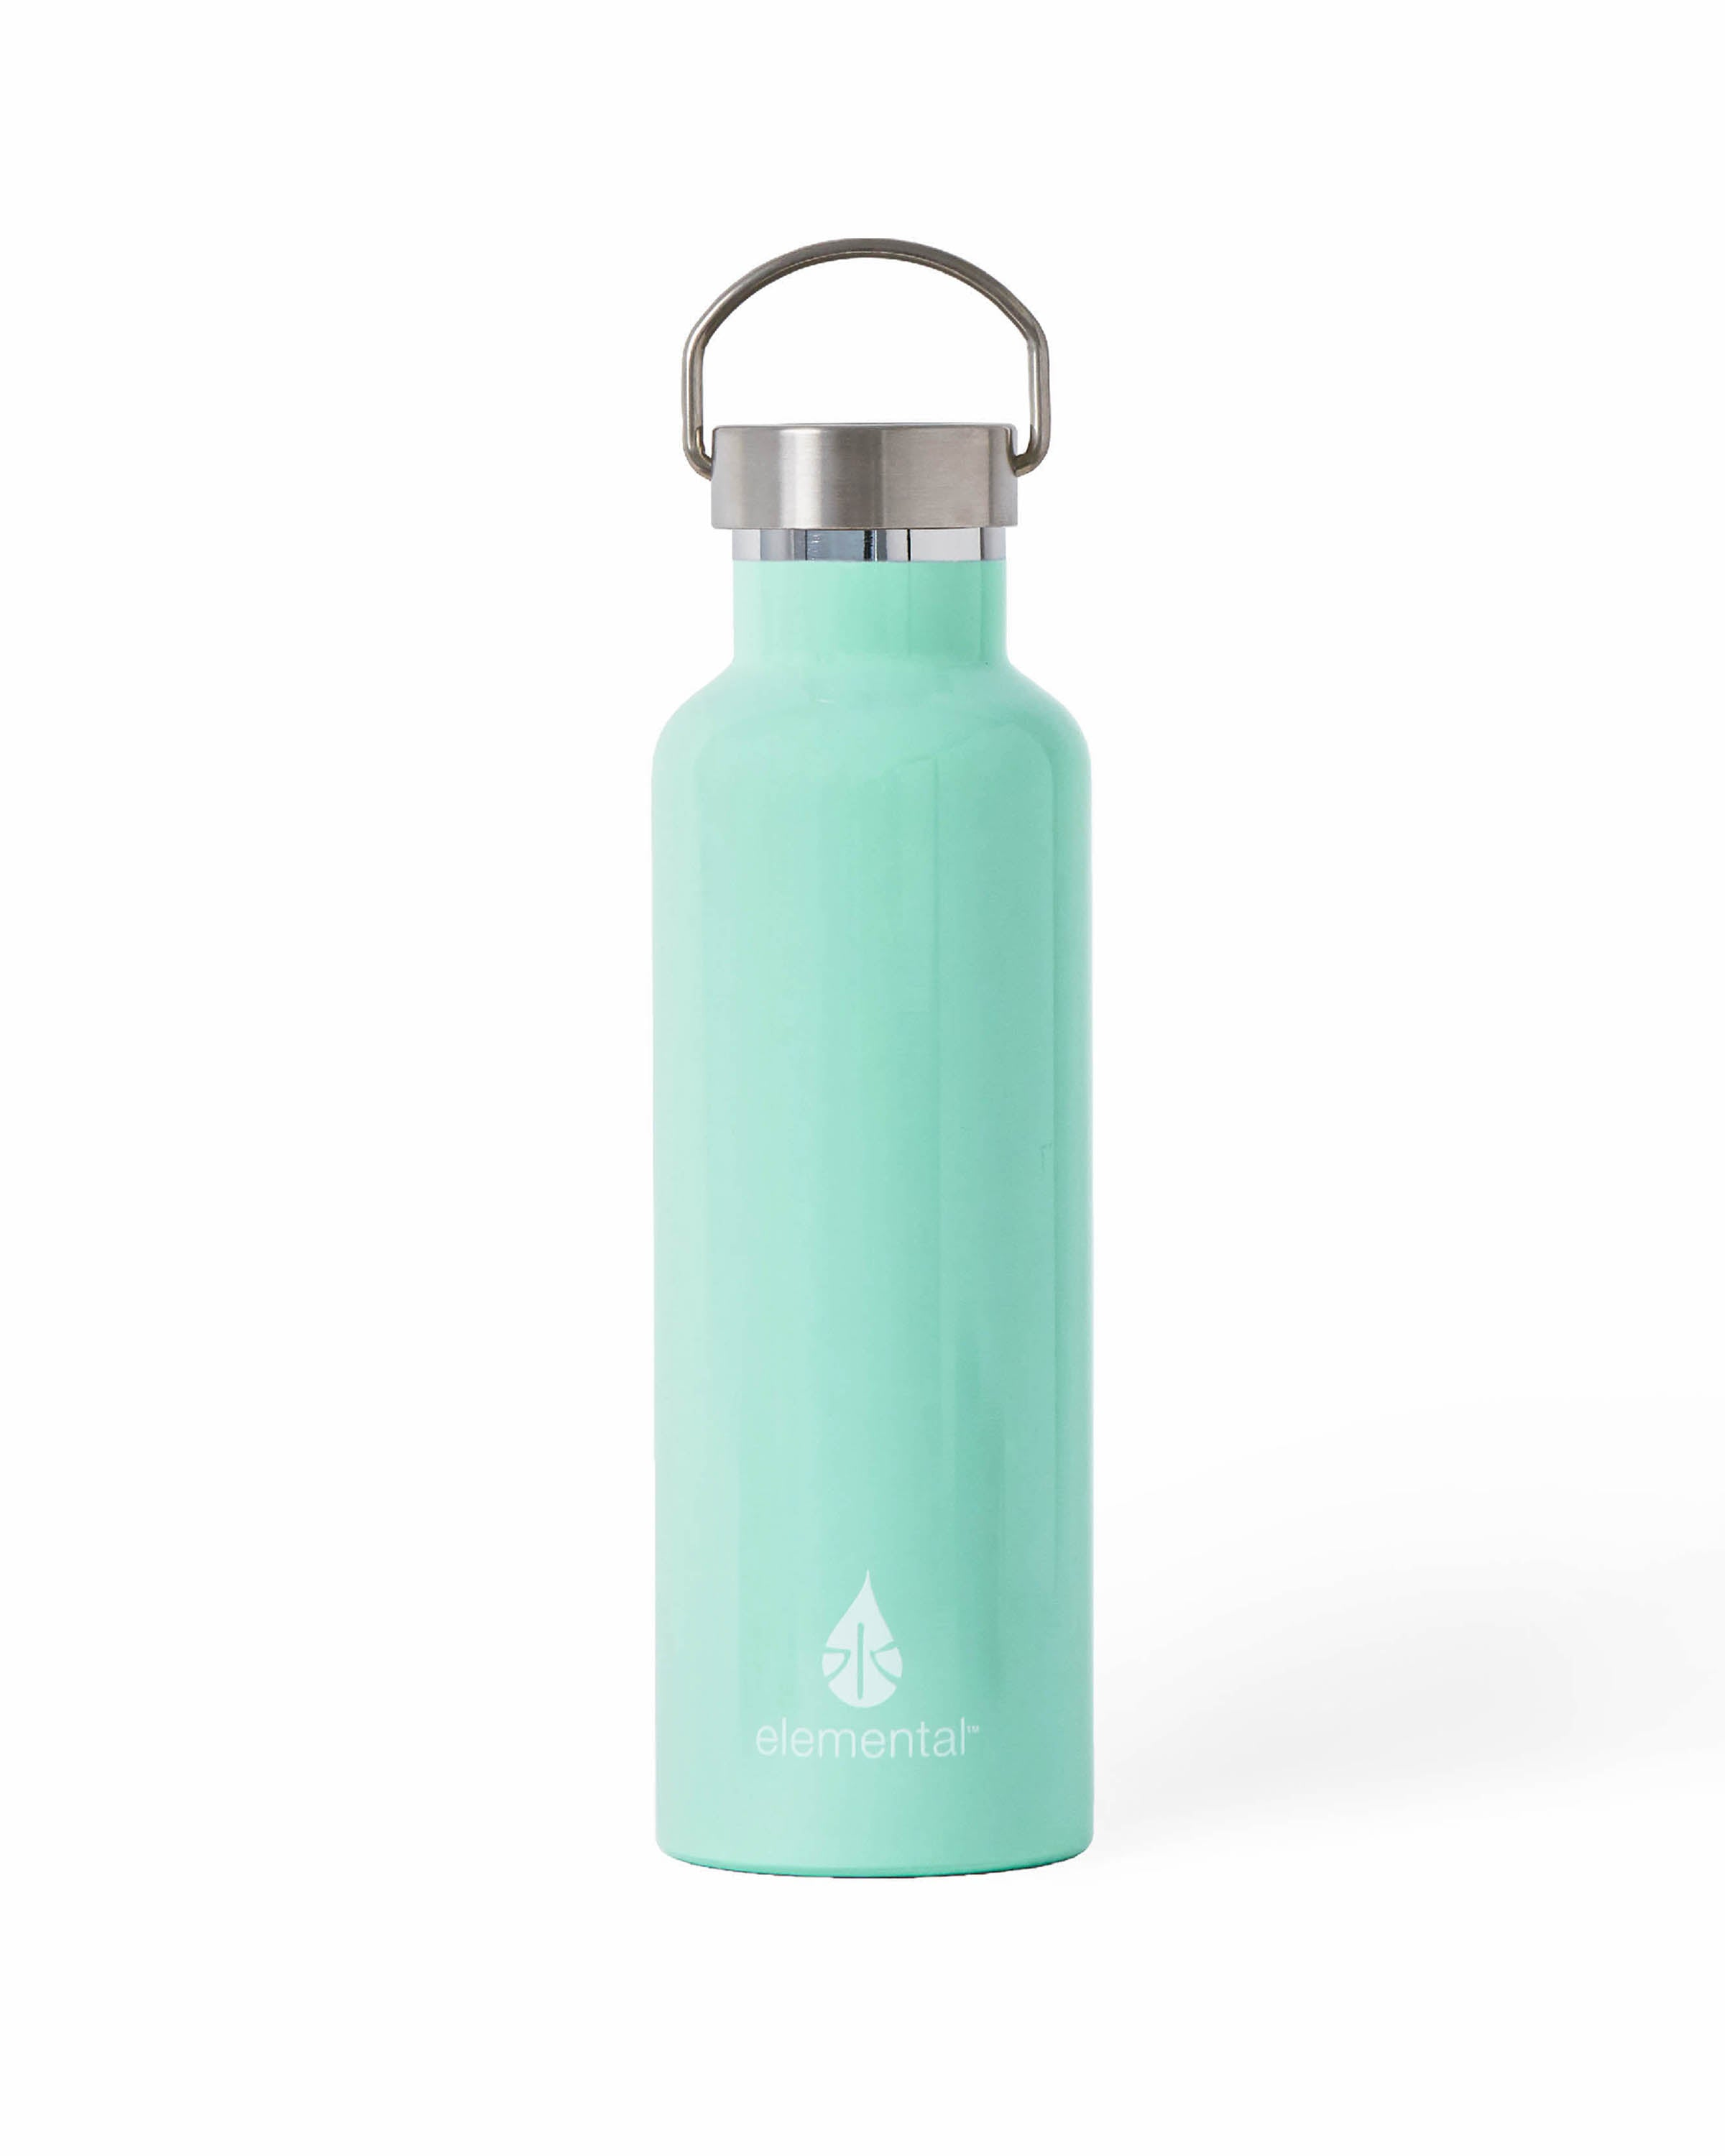 Elemental Stainless Steel Water Bottle 25oz (750ml) - Steel Cap